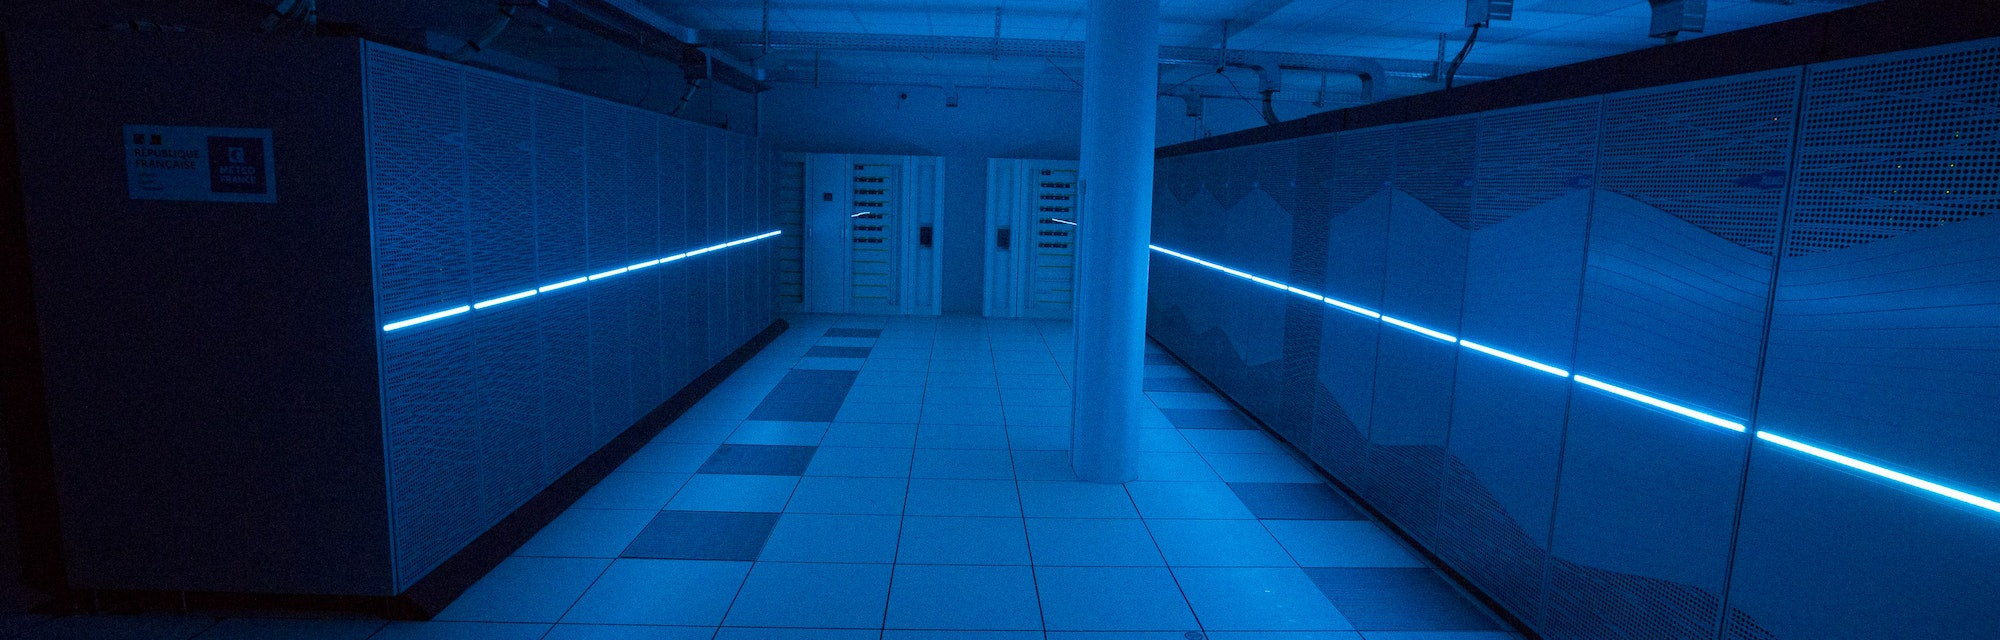 The new supercomputer of Meteo France,  the French national meteorological service is seen at Meteo ...